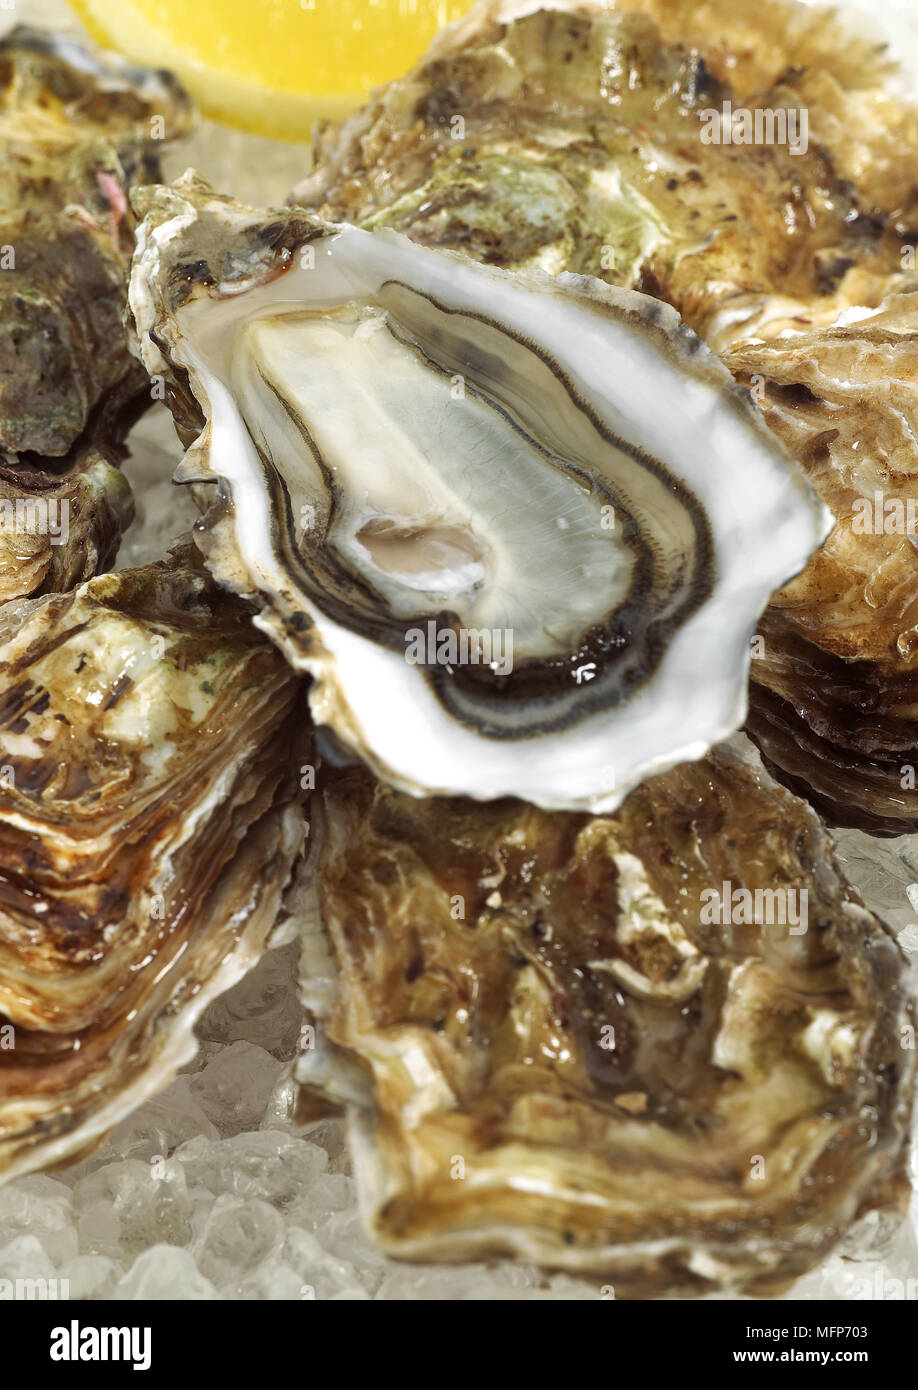 French Oyster Called Marennes d'Oleron, ostrea edulis, Seafoods on Ice - Stock Image